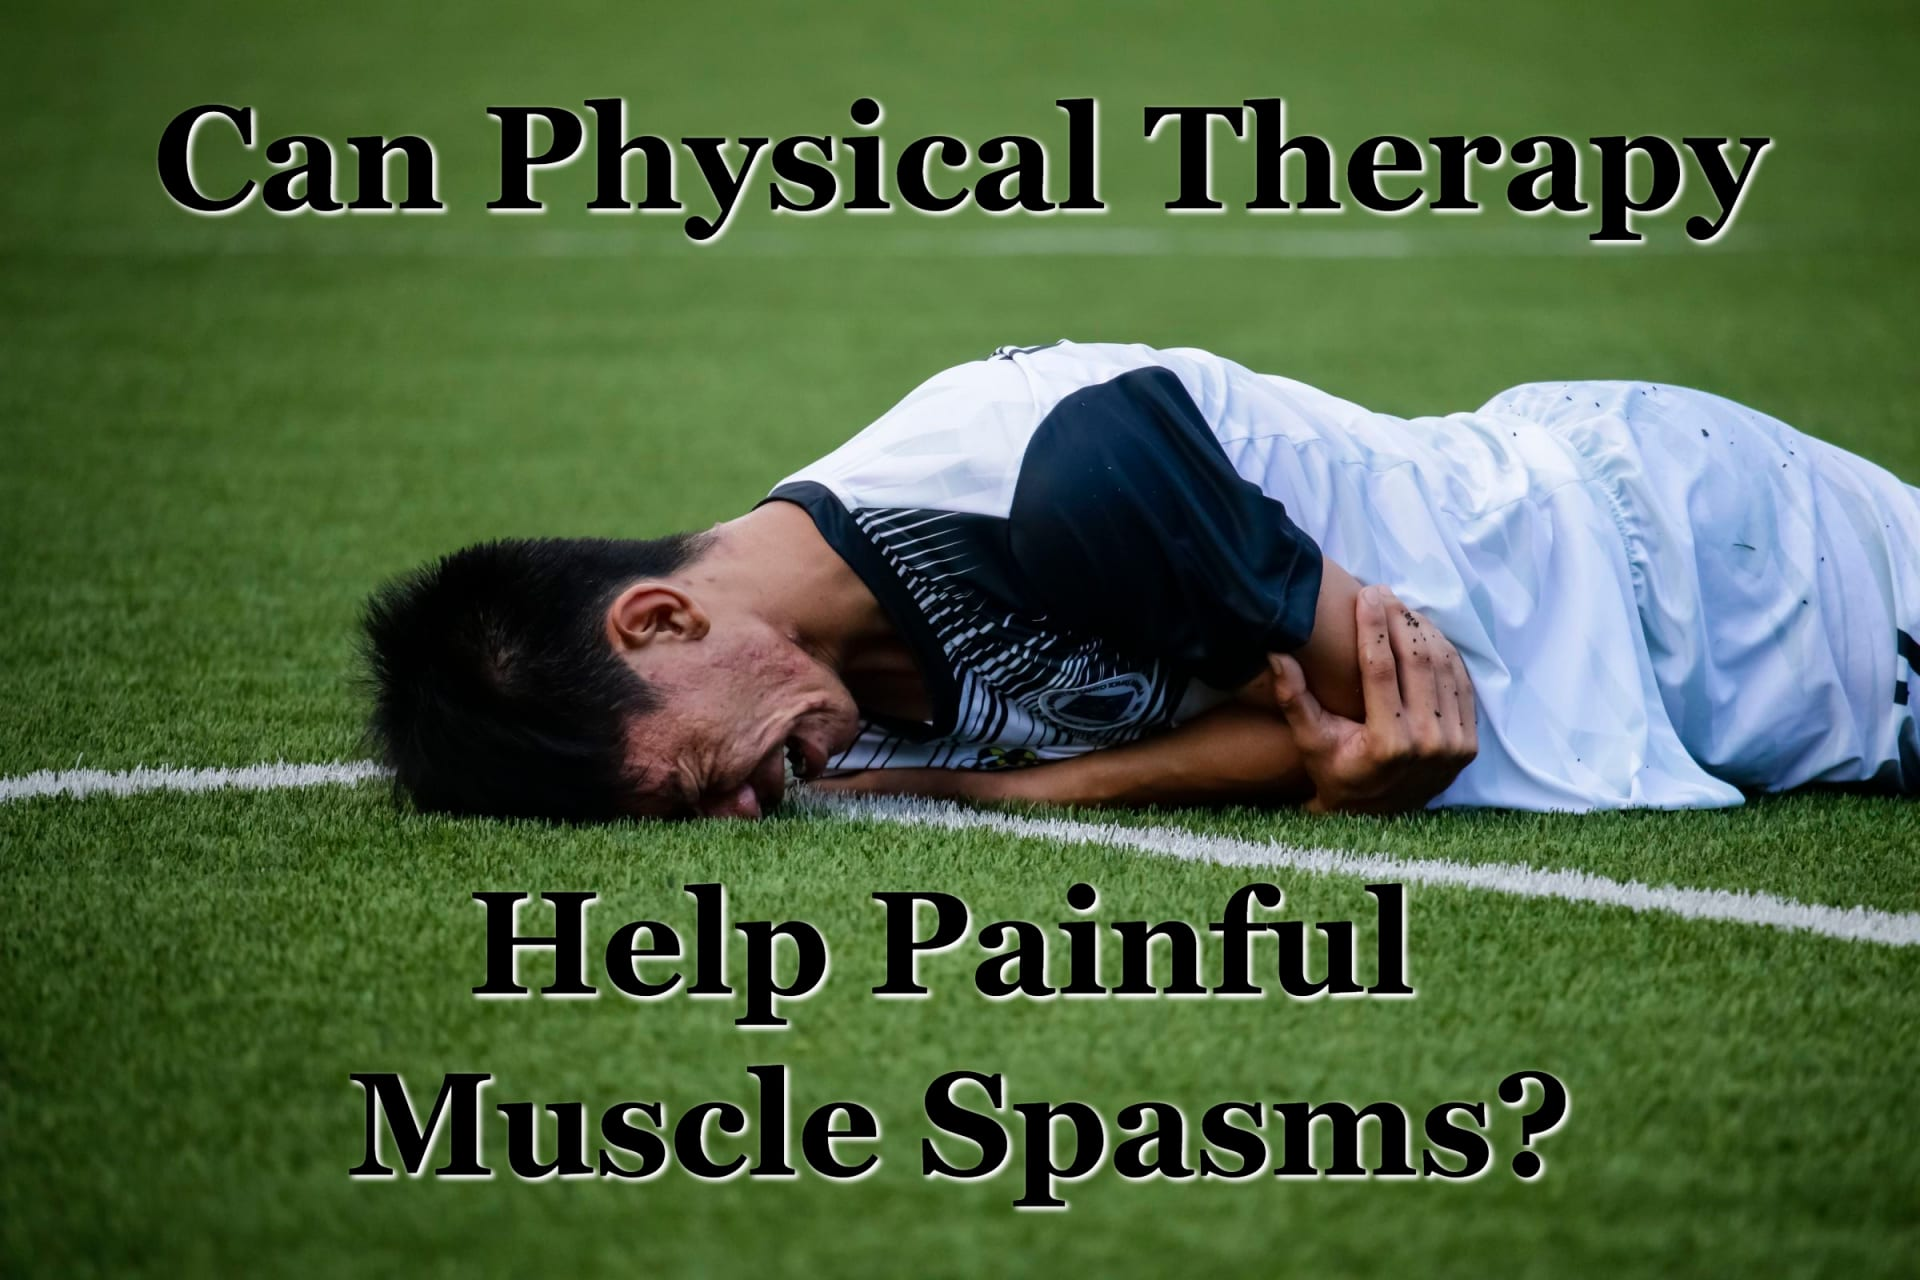 CAN PHYSICAL THERAPY HELP WITH PAINFUL MUSCLE SPASMS?